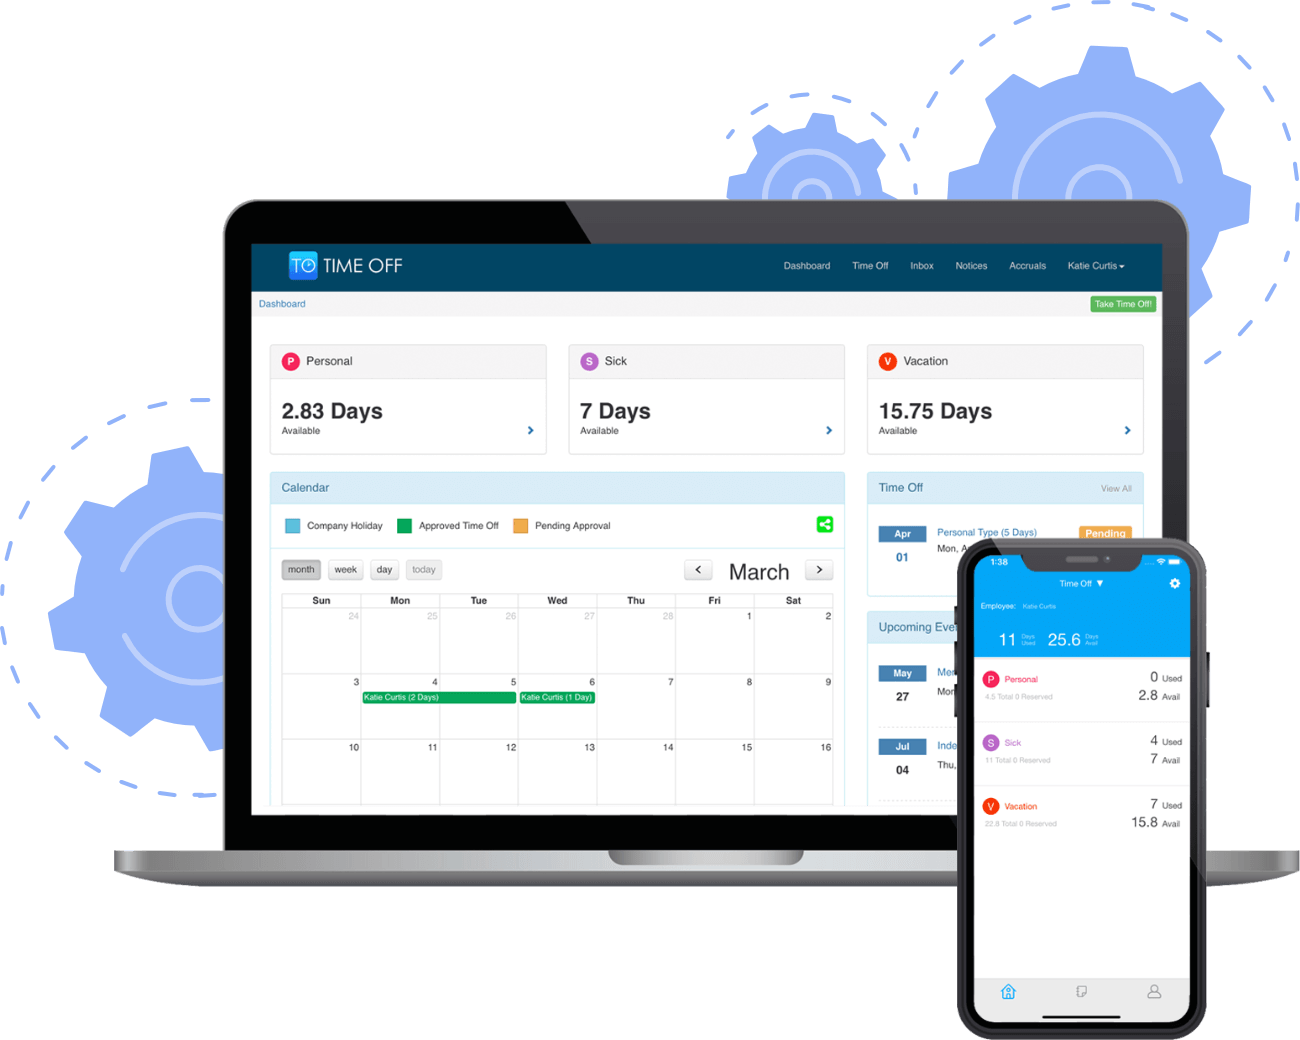 Time Off Cloud Dashboard on Web and Mobile